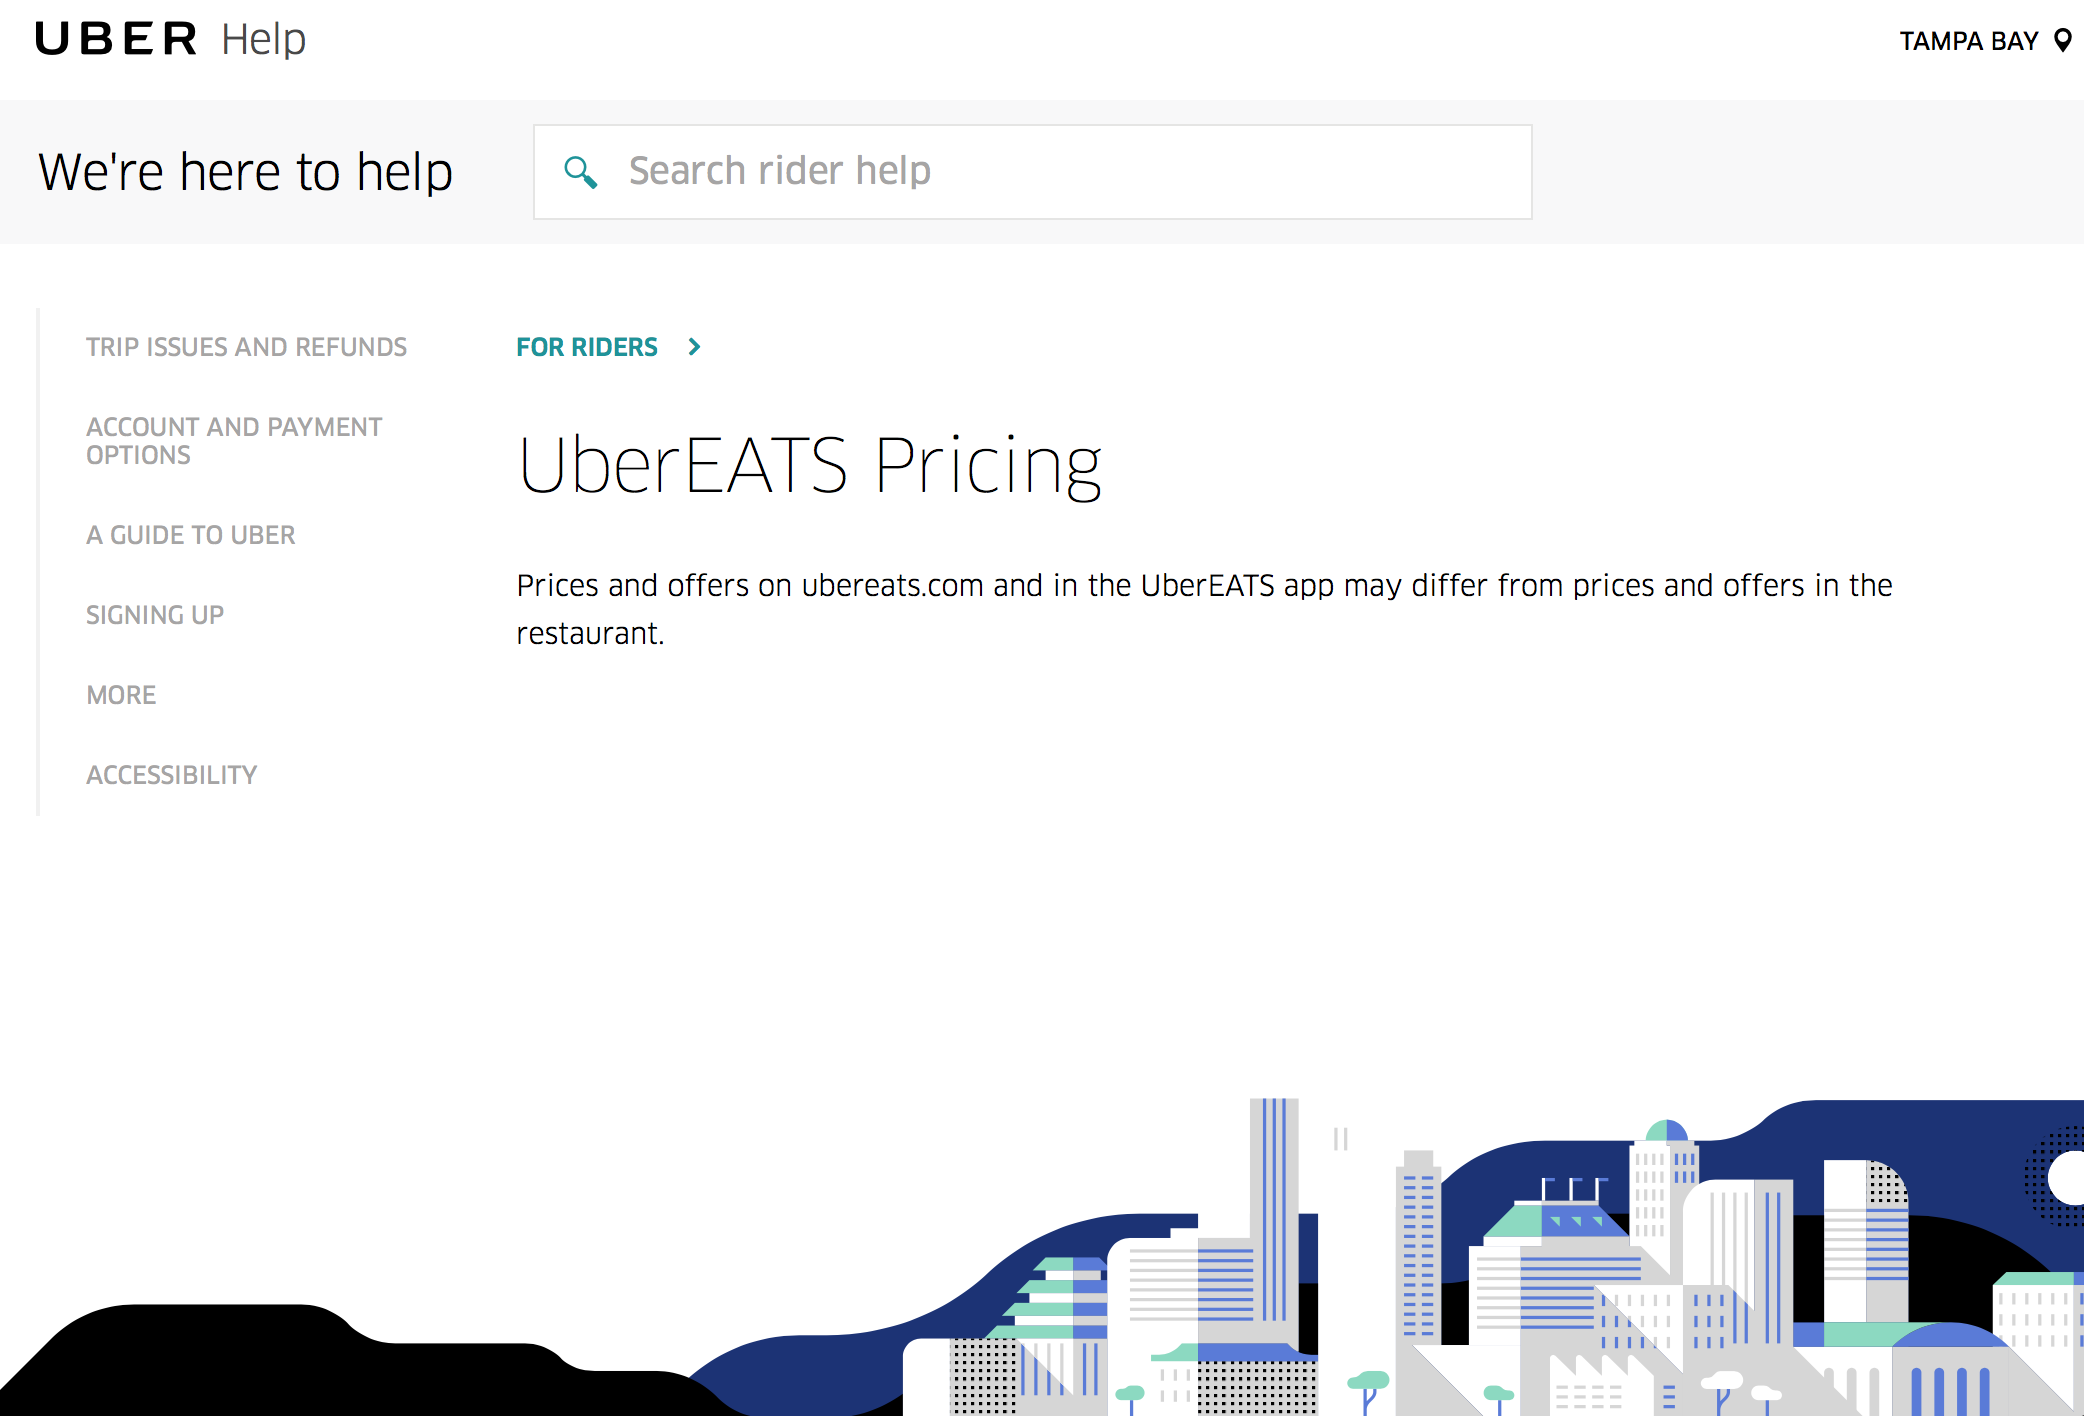 UberEats Pricing